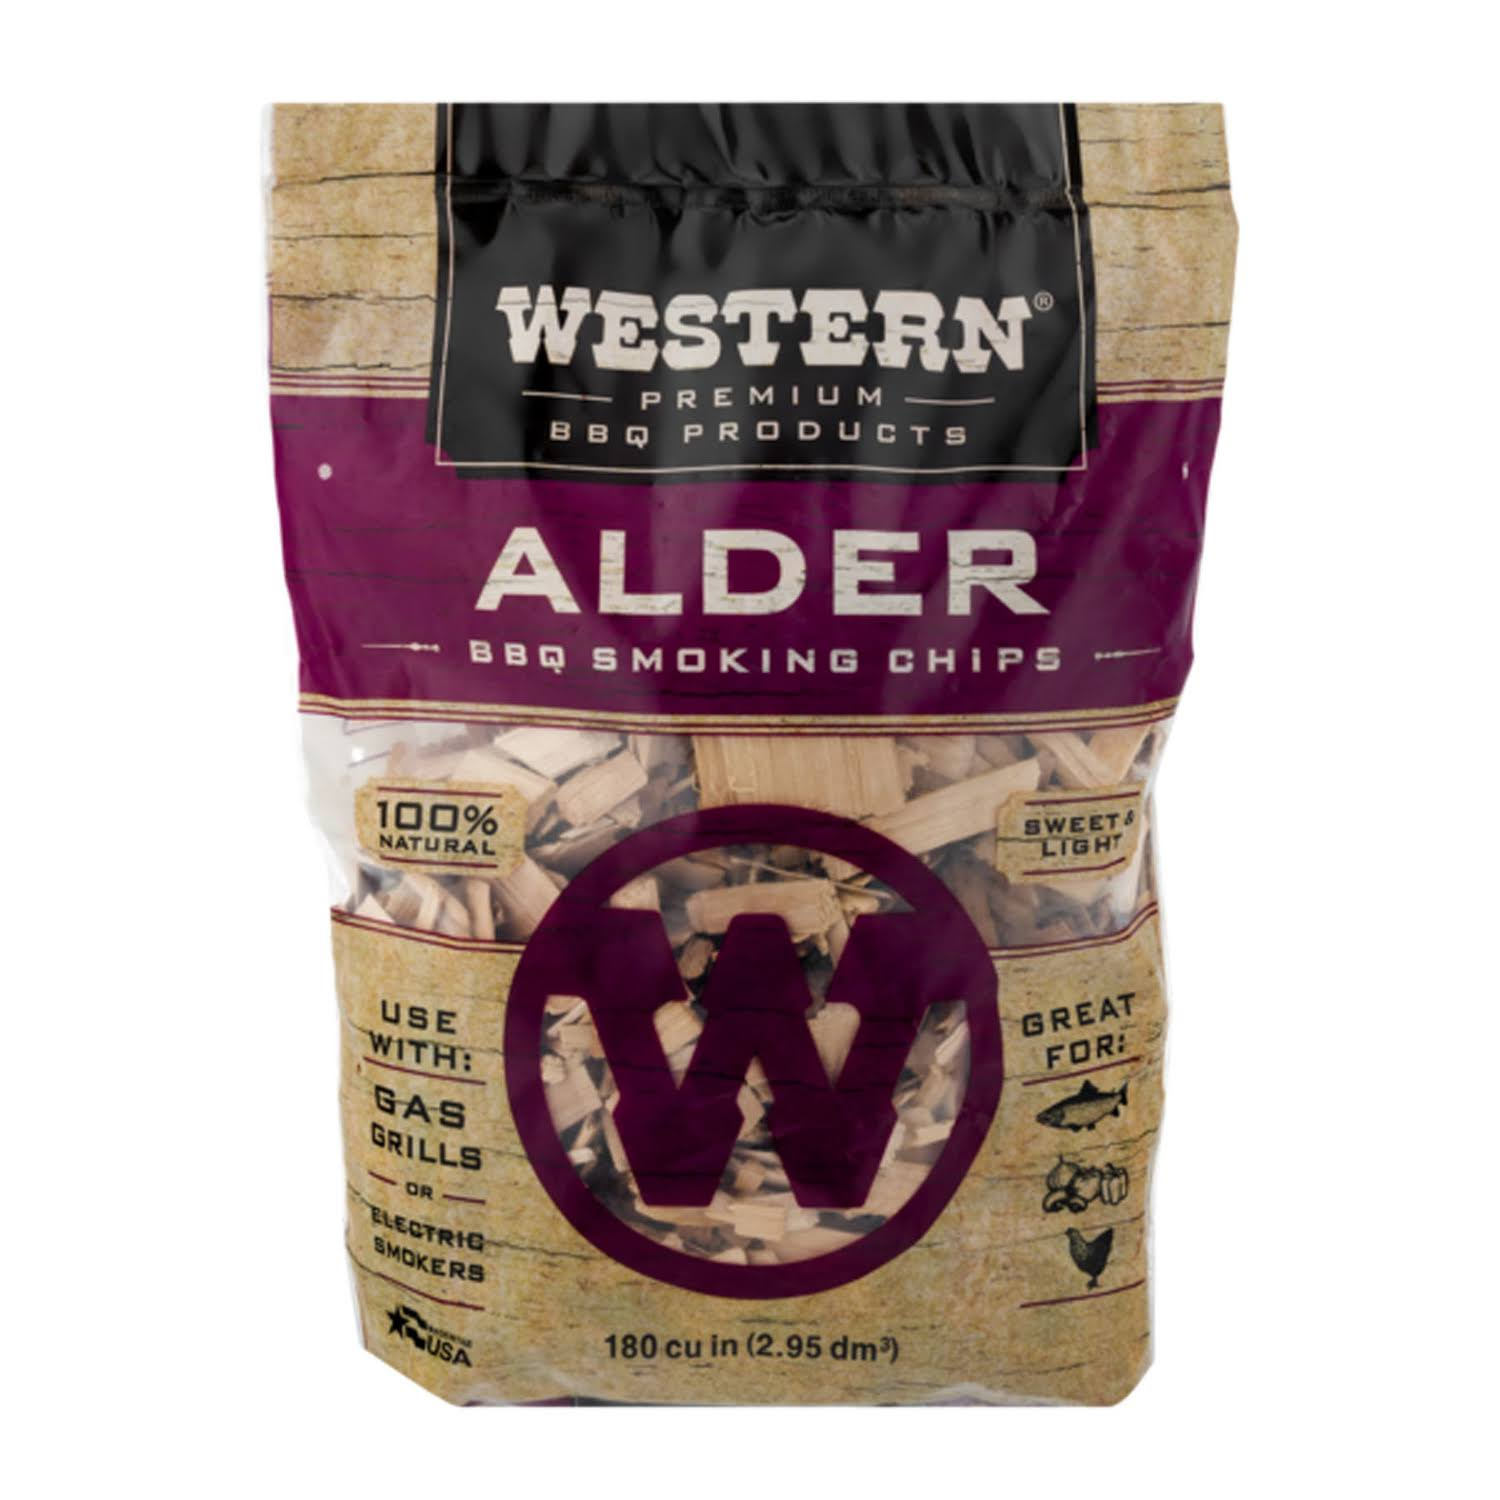 Western 28068 Alder BBQ Smoking Chips - 1lbs